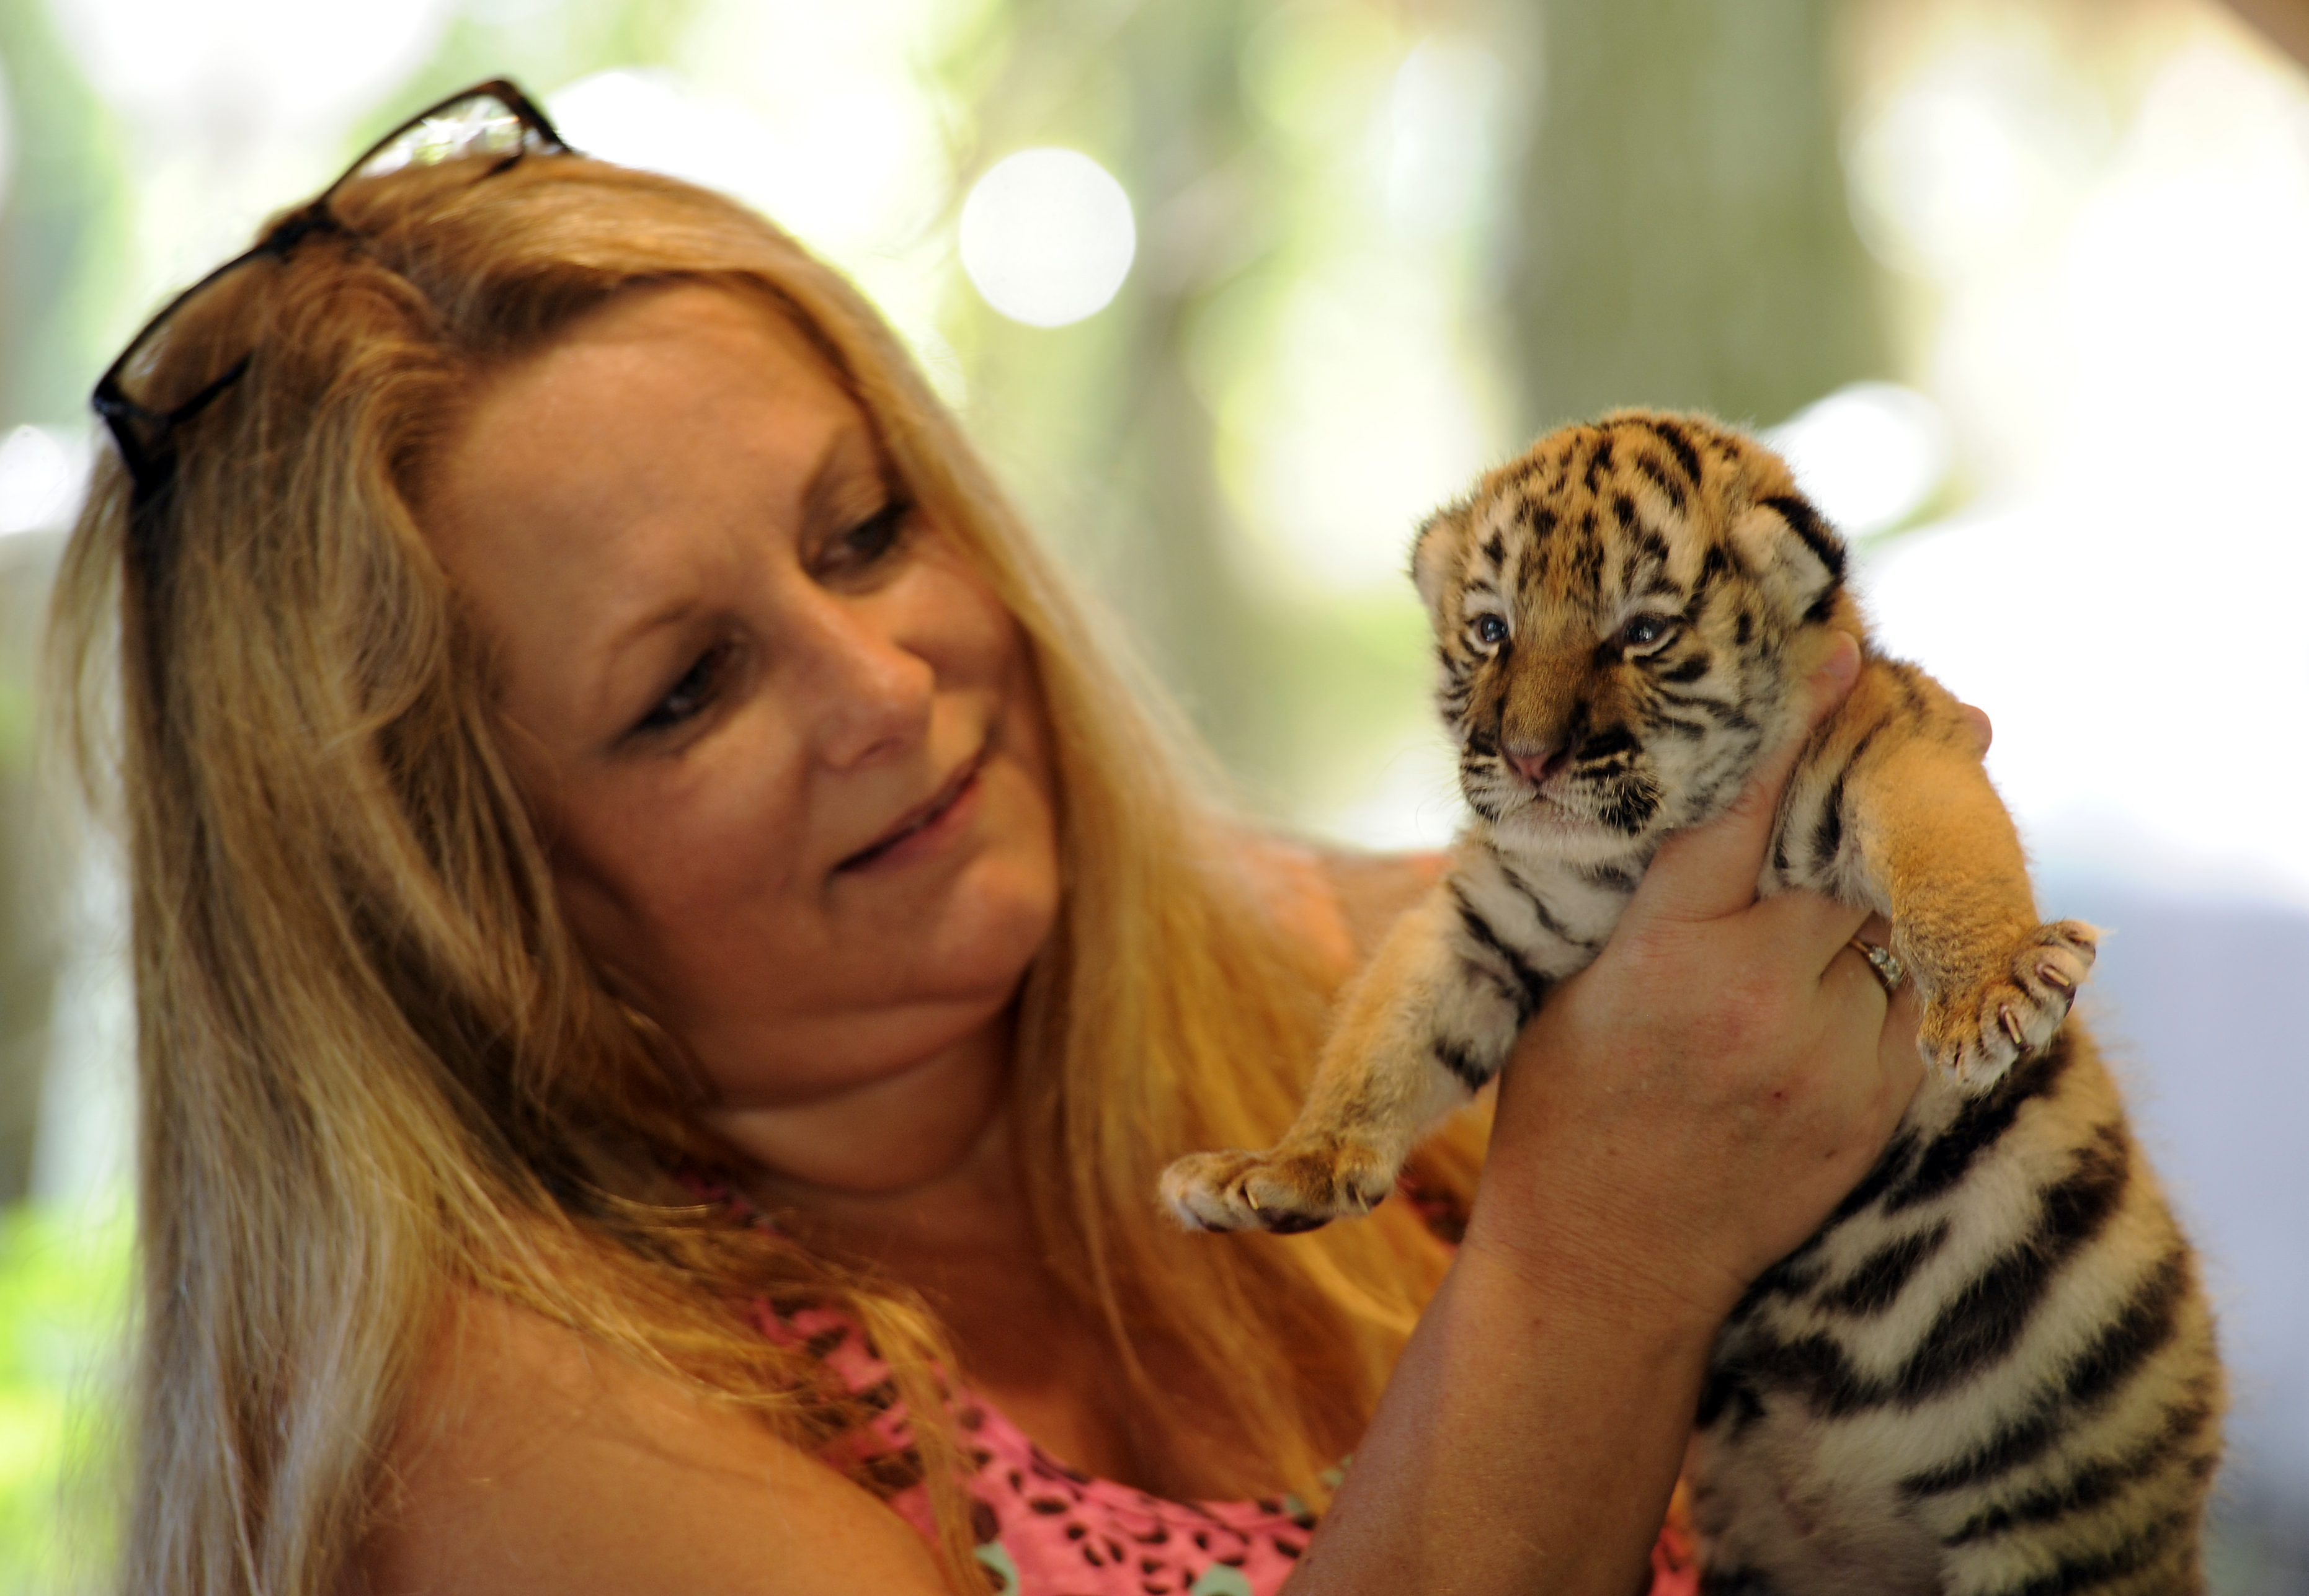 Dade City's Wild Things owner arrested on fraud charges